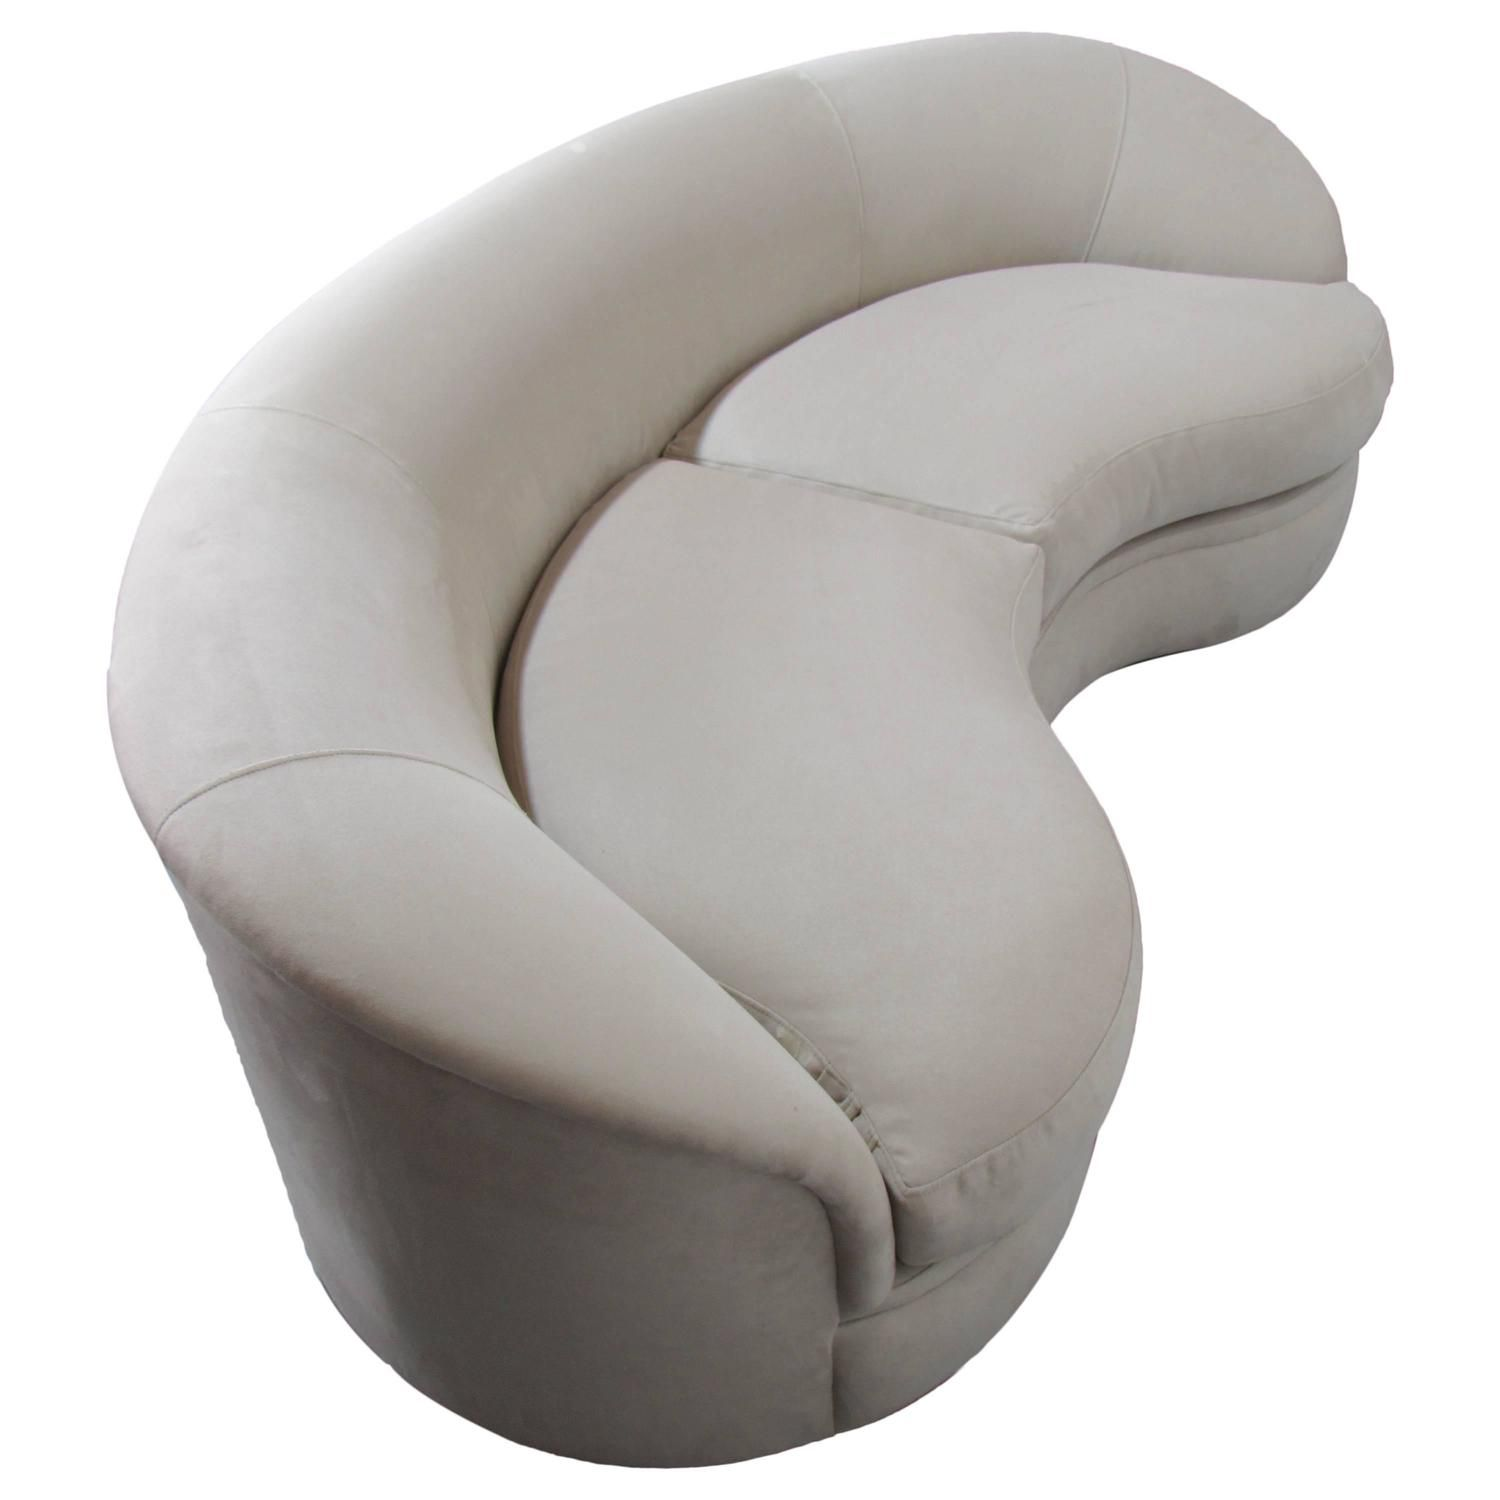 Beau Biomorphic Kidney Bean Shaped Sofa By Vladimir Kagan For Directional, 1970s  | See More Antique